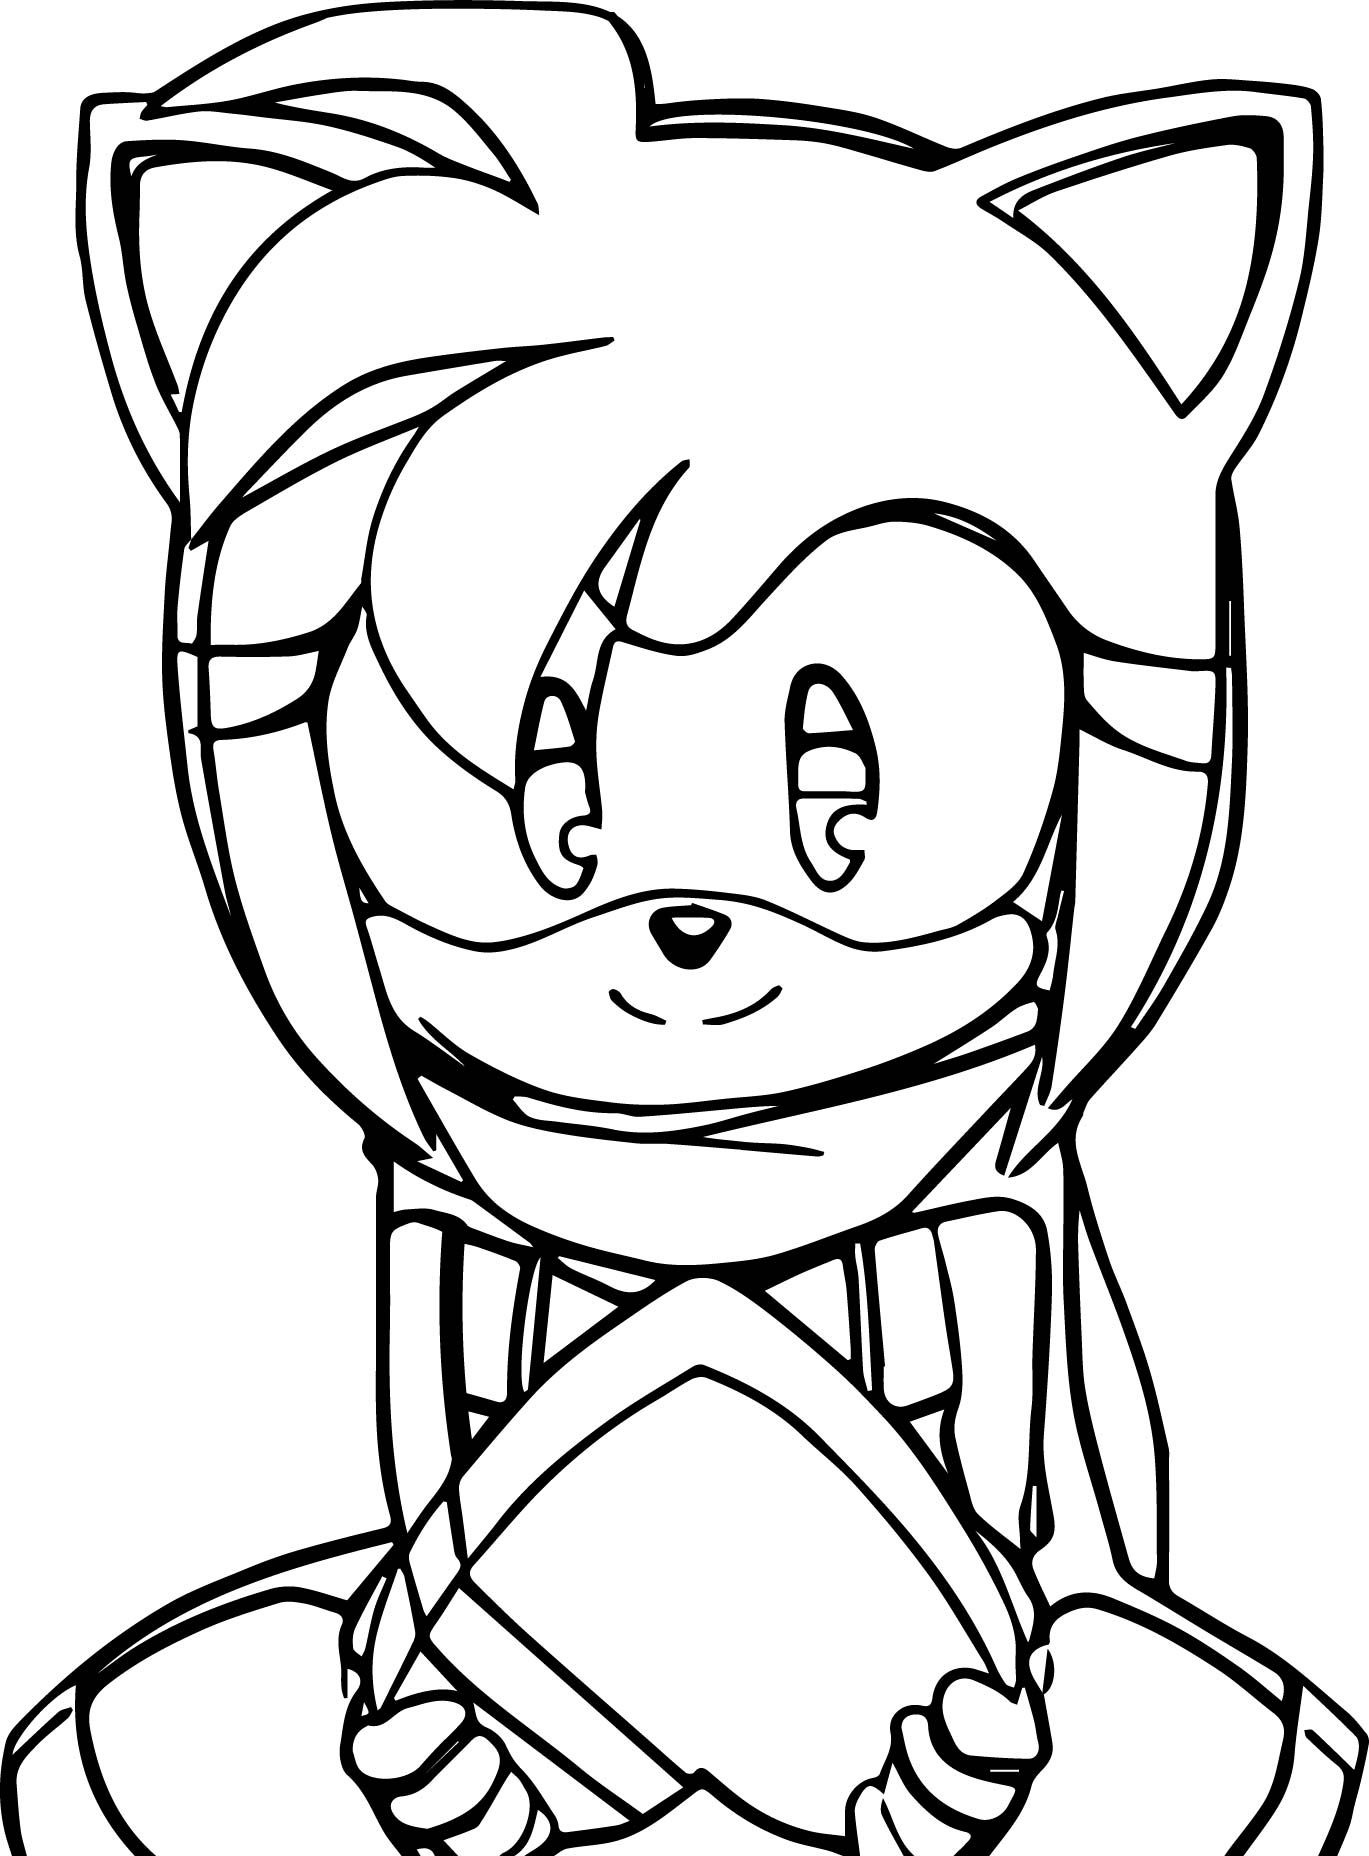 Amy Rose Heart Box Coloring Page | Pinterest | Amy rose